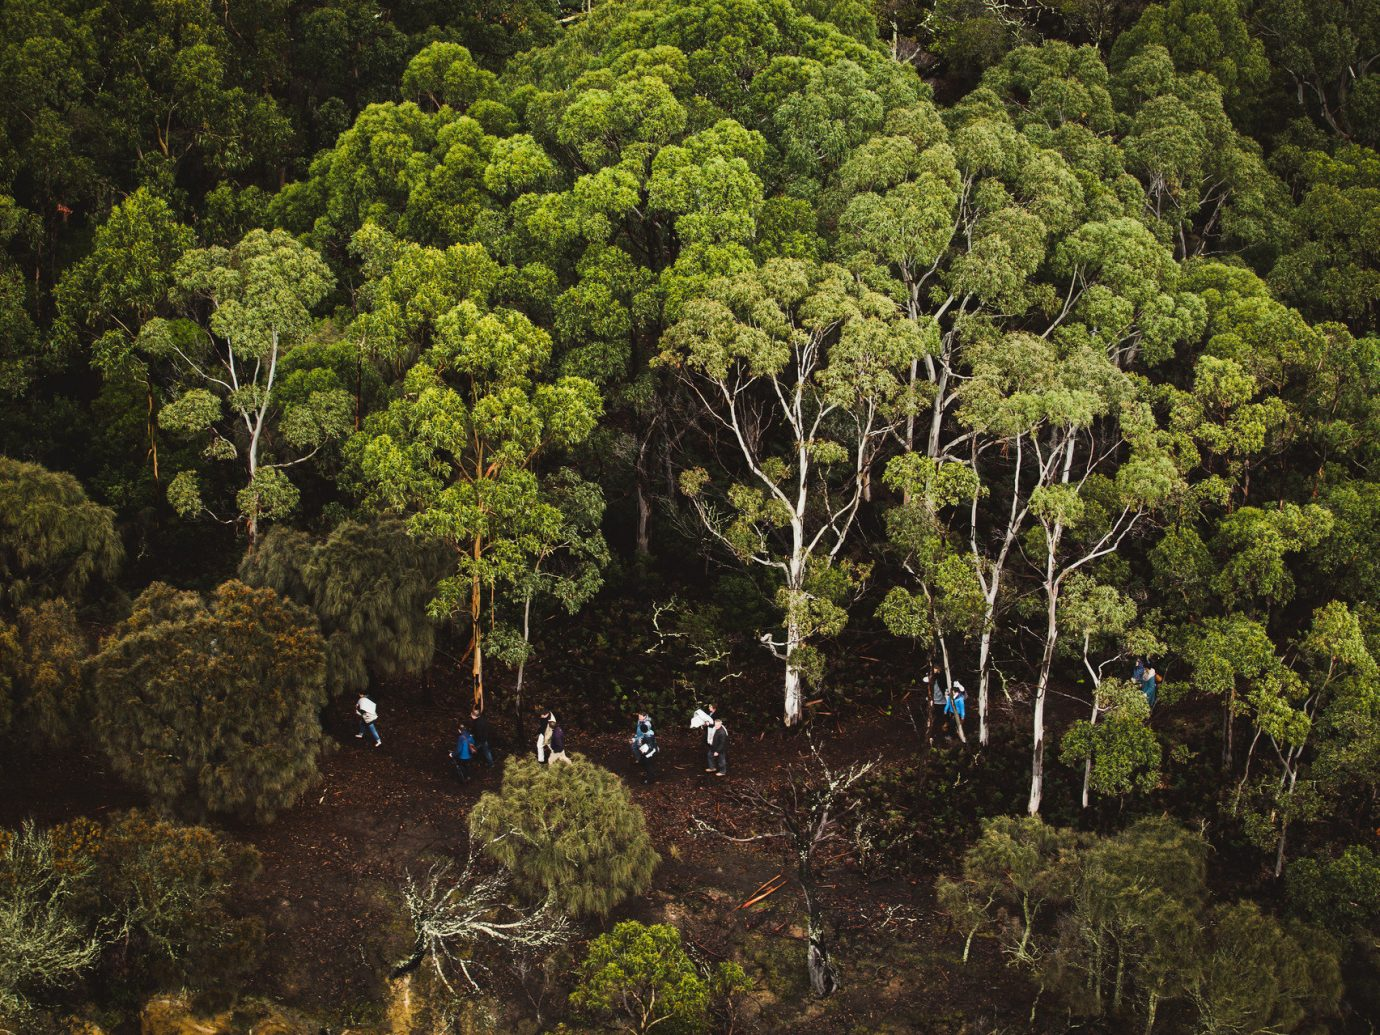 aerial Forest Greenery Hotels isolation Luxury Travel Nature Outdoor Activities Outdoors people remote trees woods tree outdoor plant habitat vegetation green natural environment ecosystem flora woodland botany leaf flower woody plant rainforest autumn landscape Garden Jungle plantation wooded